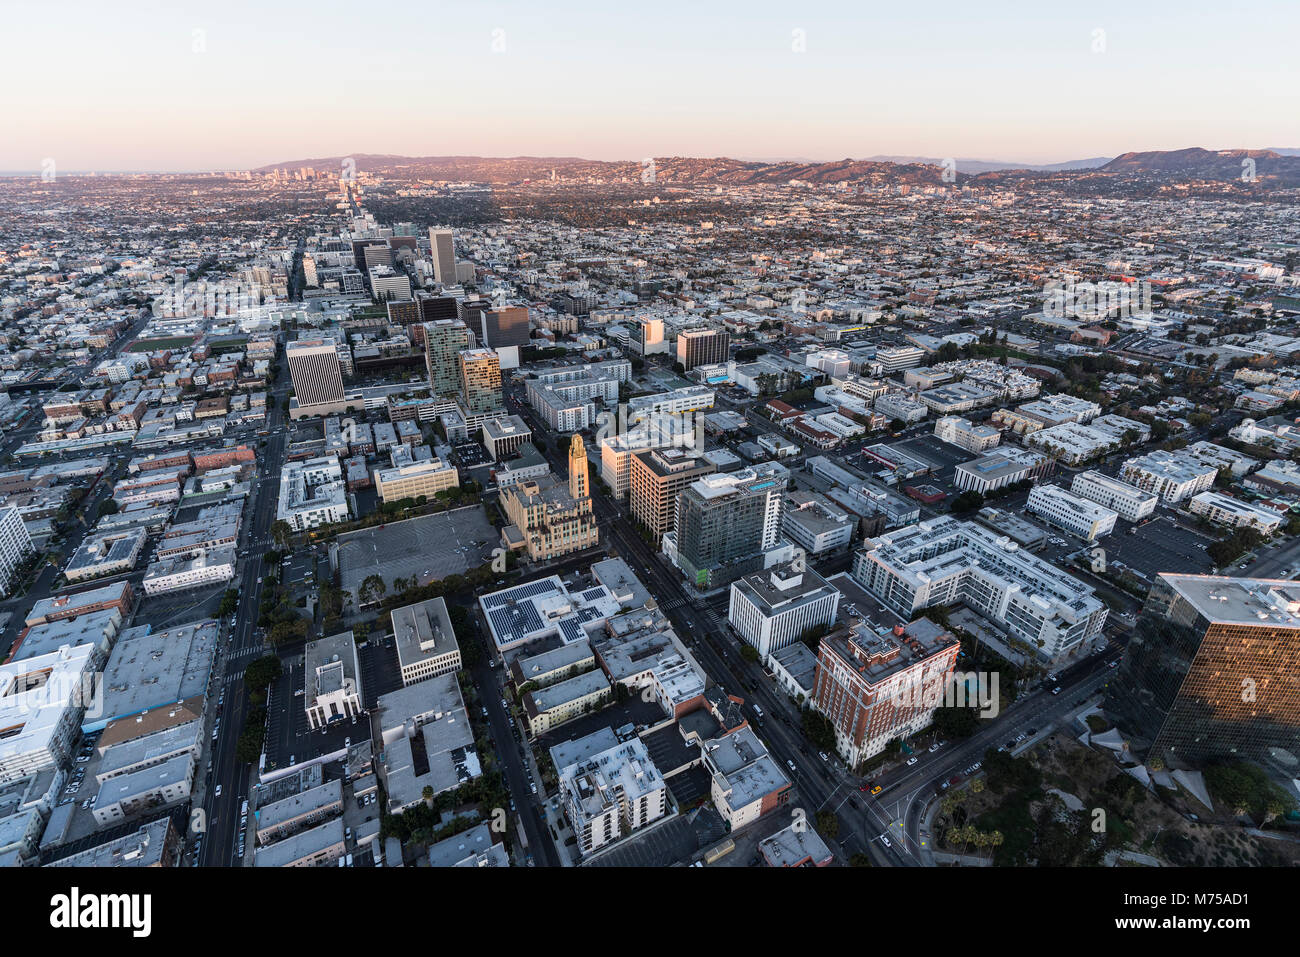 Early morning aerial view down Wilshire Blvd in the Koreatown area of Los Angeles California. - Stock Image